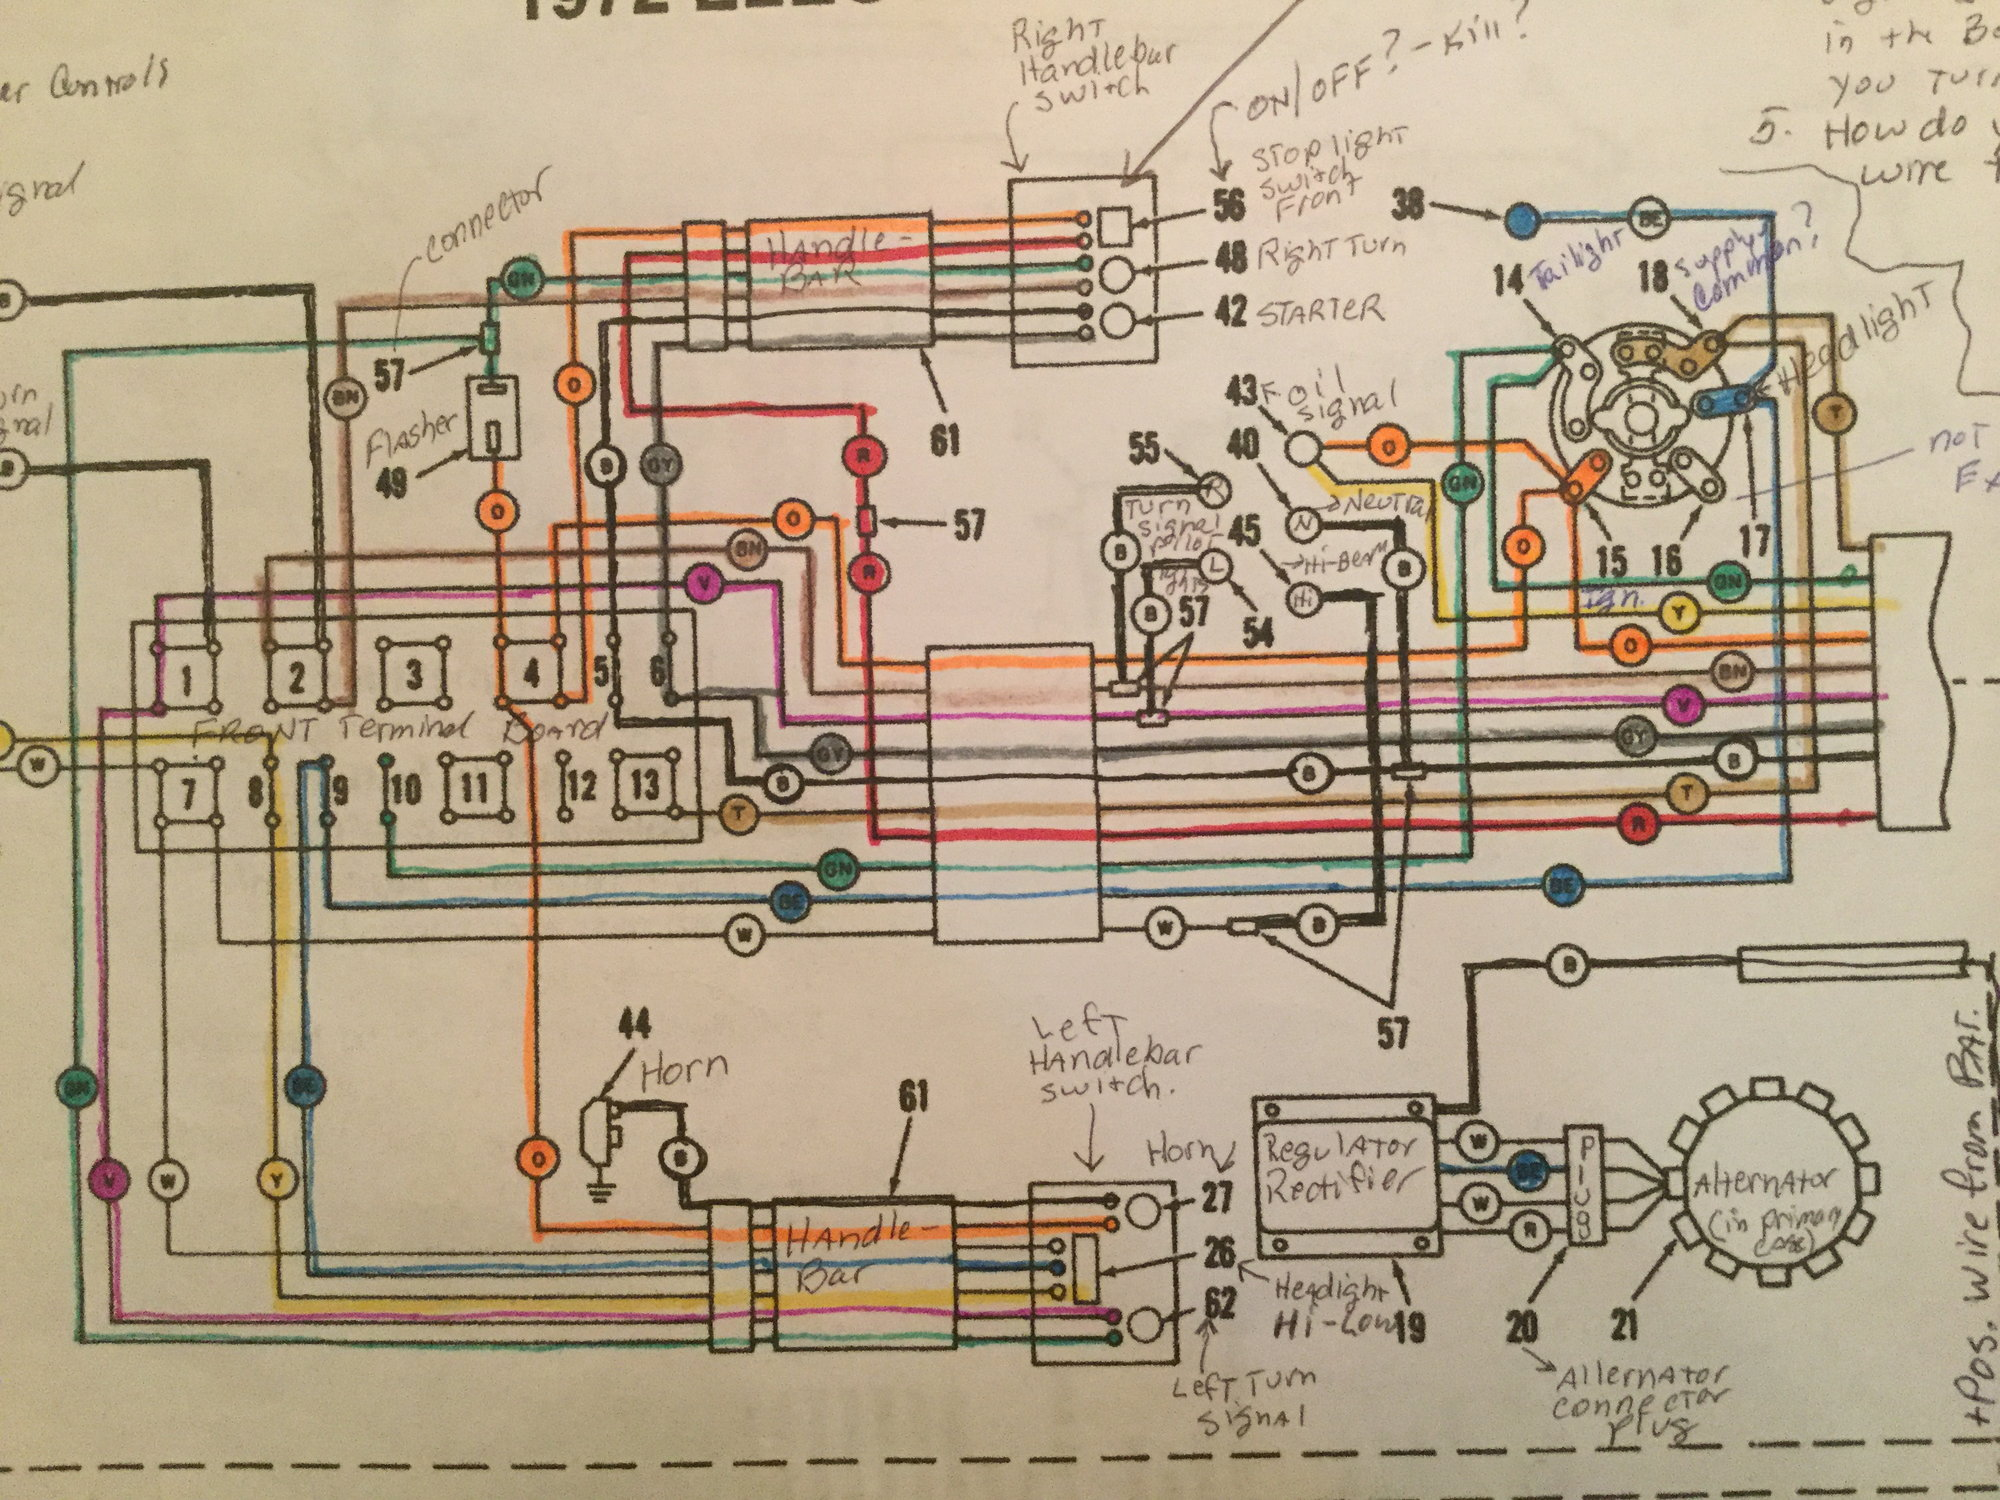 Flh Dash Wiring Diagram - Wiring Diagrams Harley Davidson Alternator Wiring Diagram on